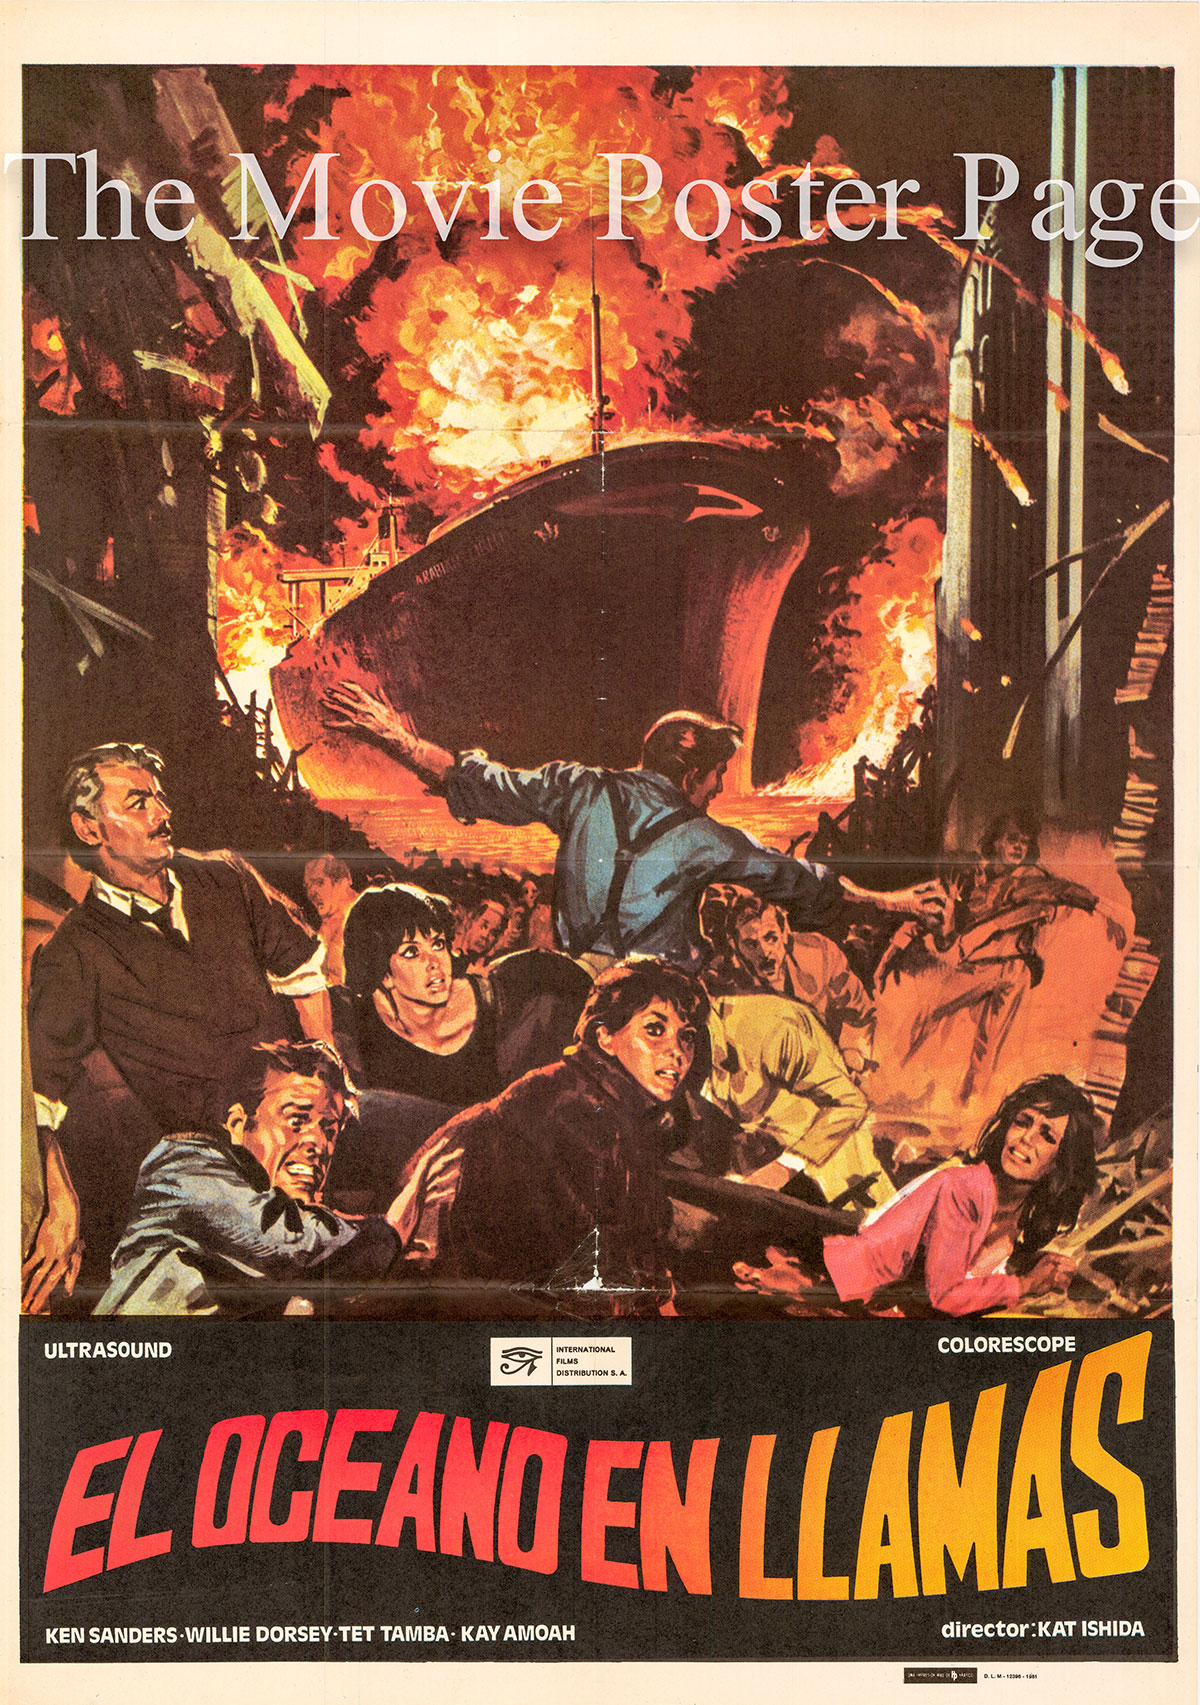 Pictured is a Spanish one-sheet poster for the 1978 Kastumune Ishida film High Seas Hijack starring Hiroshi Fujioka as Geologist Jiro Tate.